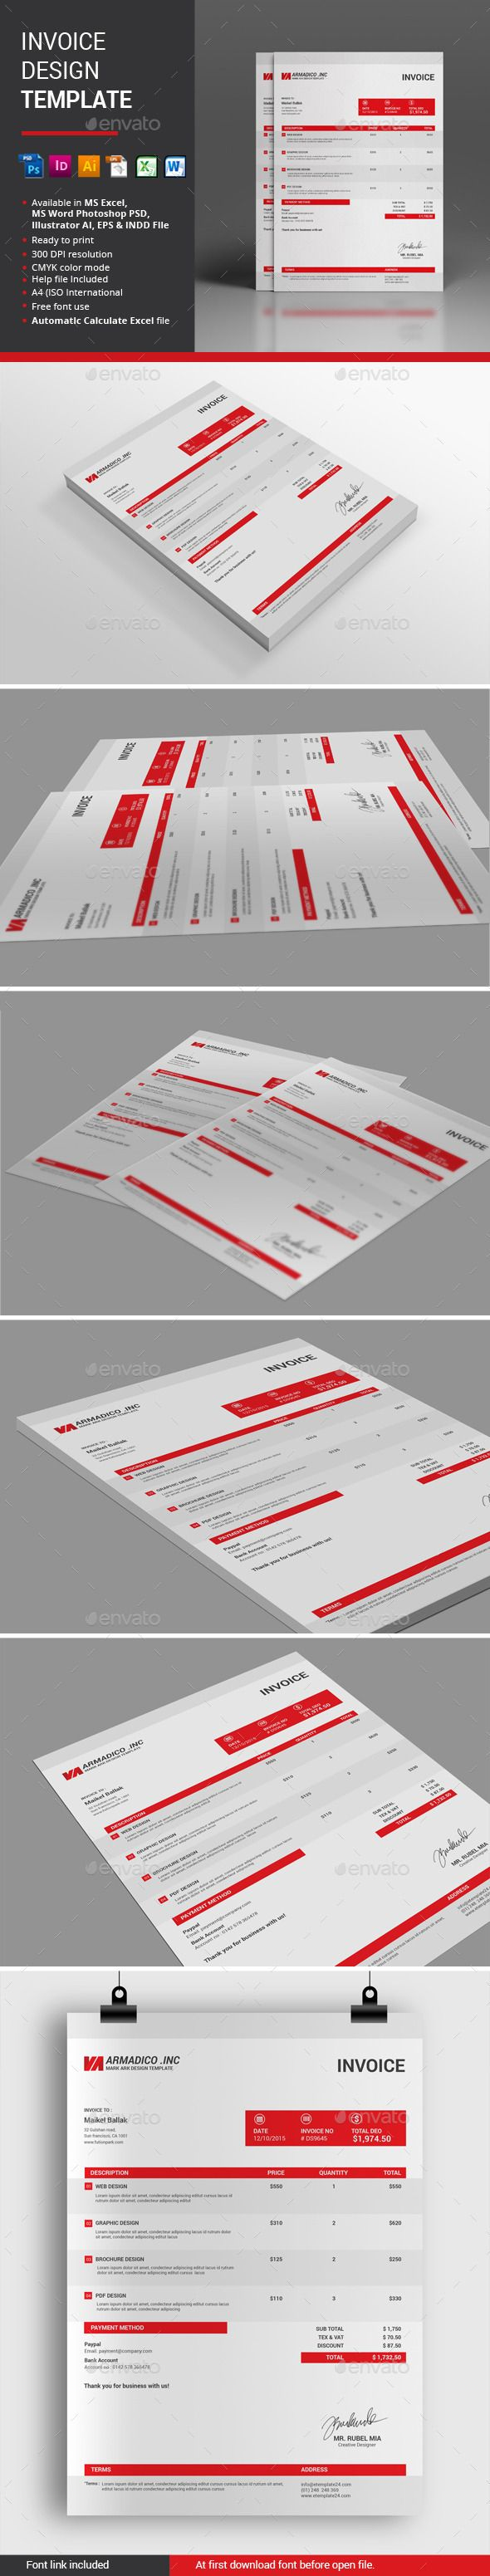 Invoice Desgin Template Proposals u0026 Invoices